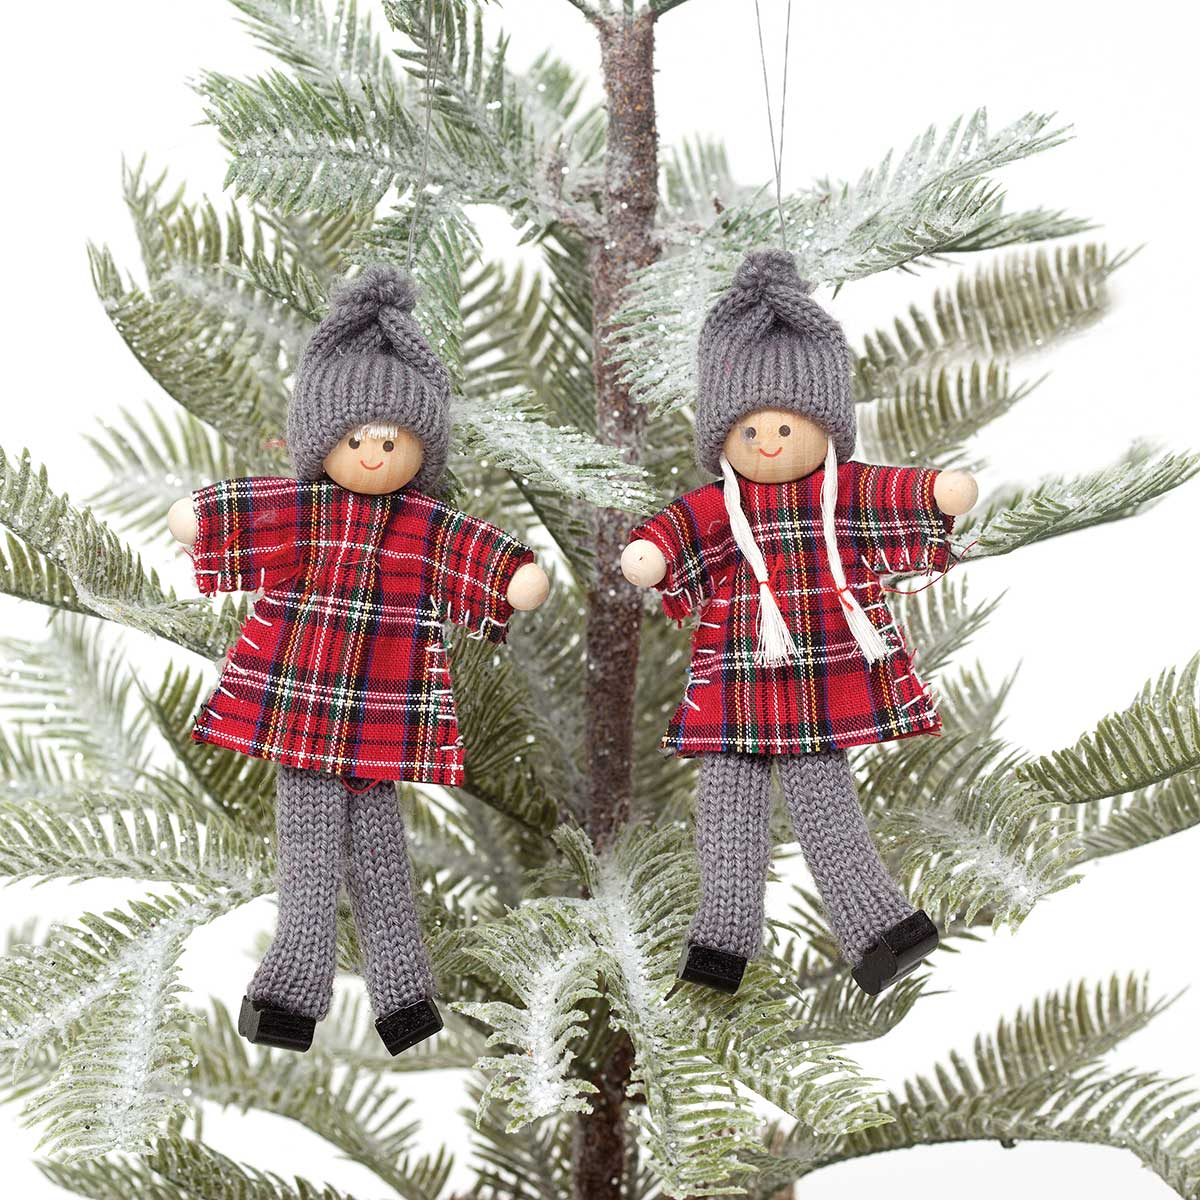 PLAID KID ORNAMENT 2 ASSORTED